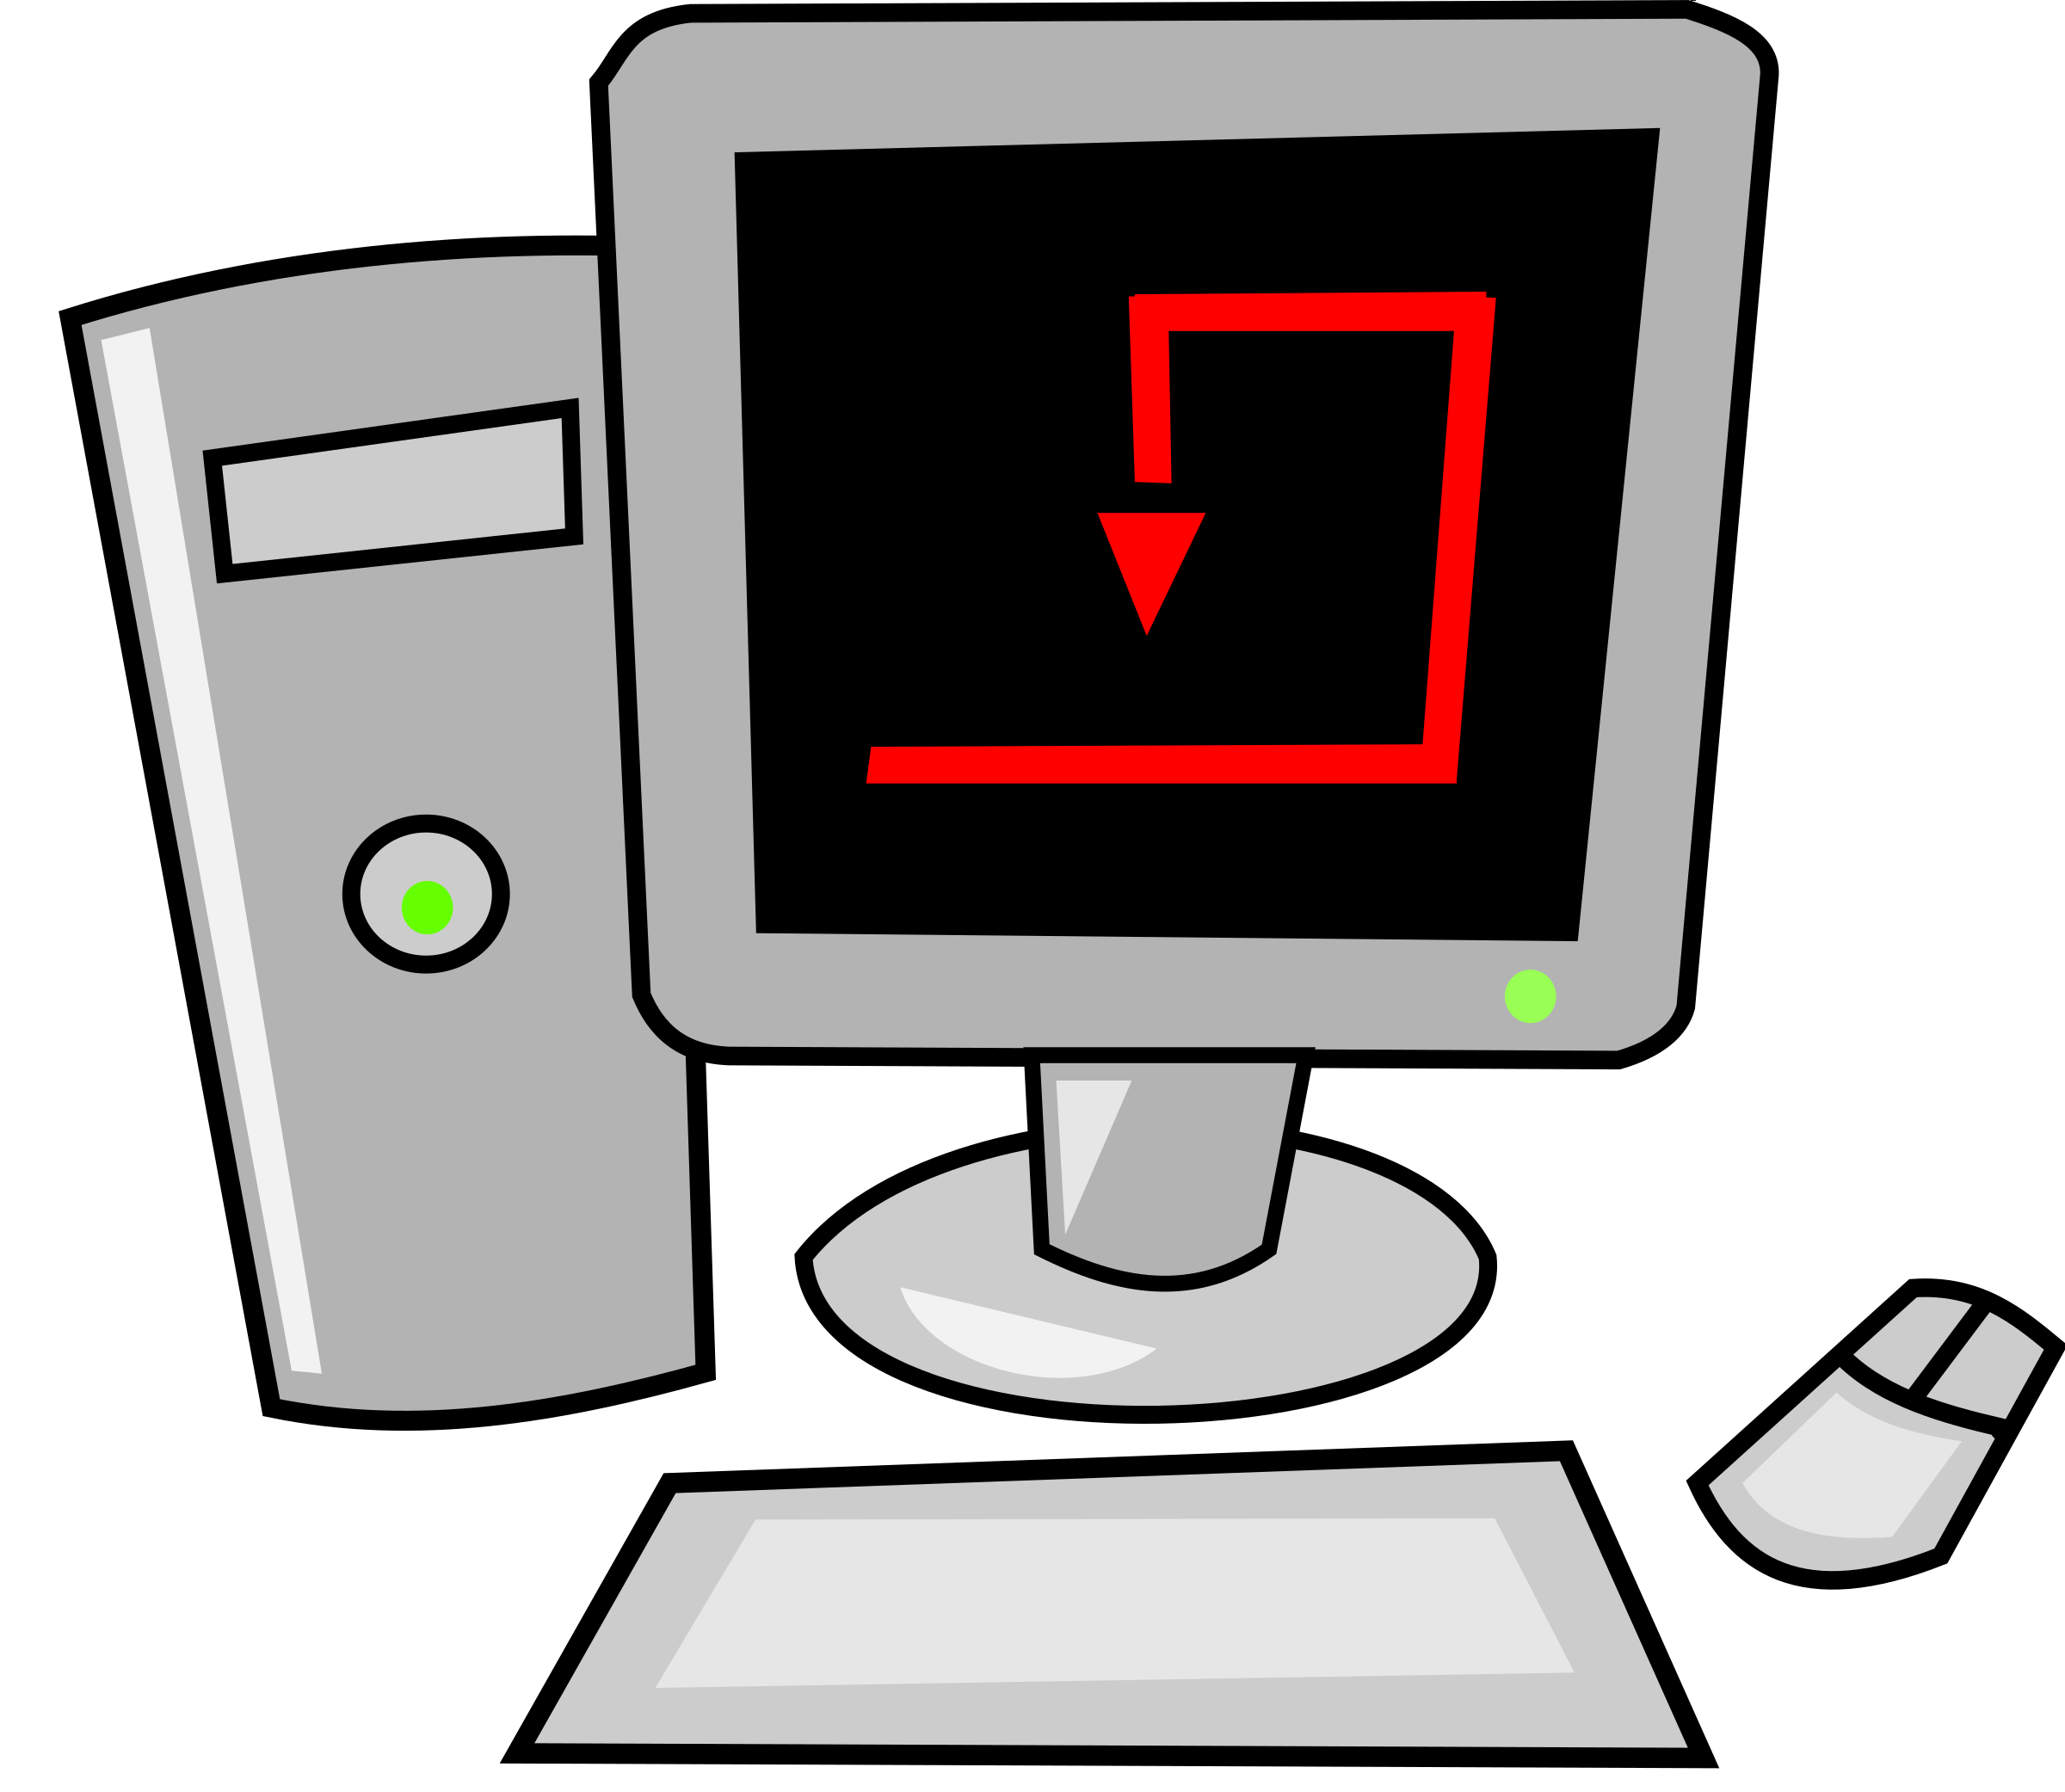 Keyboard Clipart Computer Monitor Keyboard Computer Monitor Transparent Free For Download On Webstockreview 2020